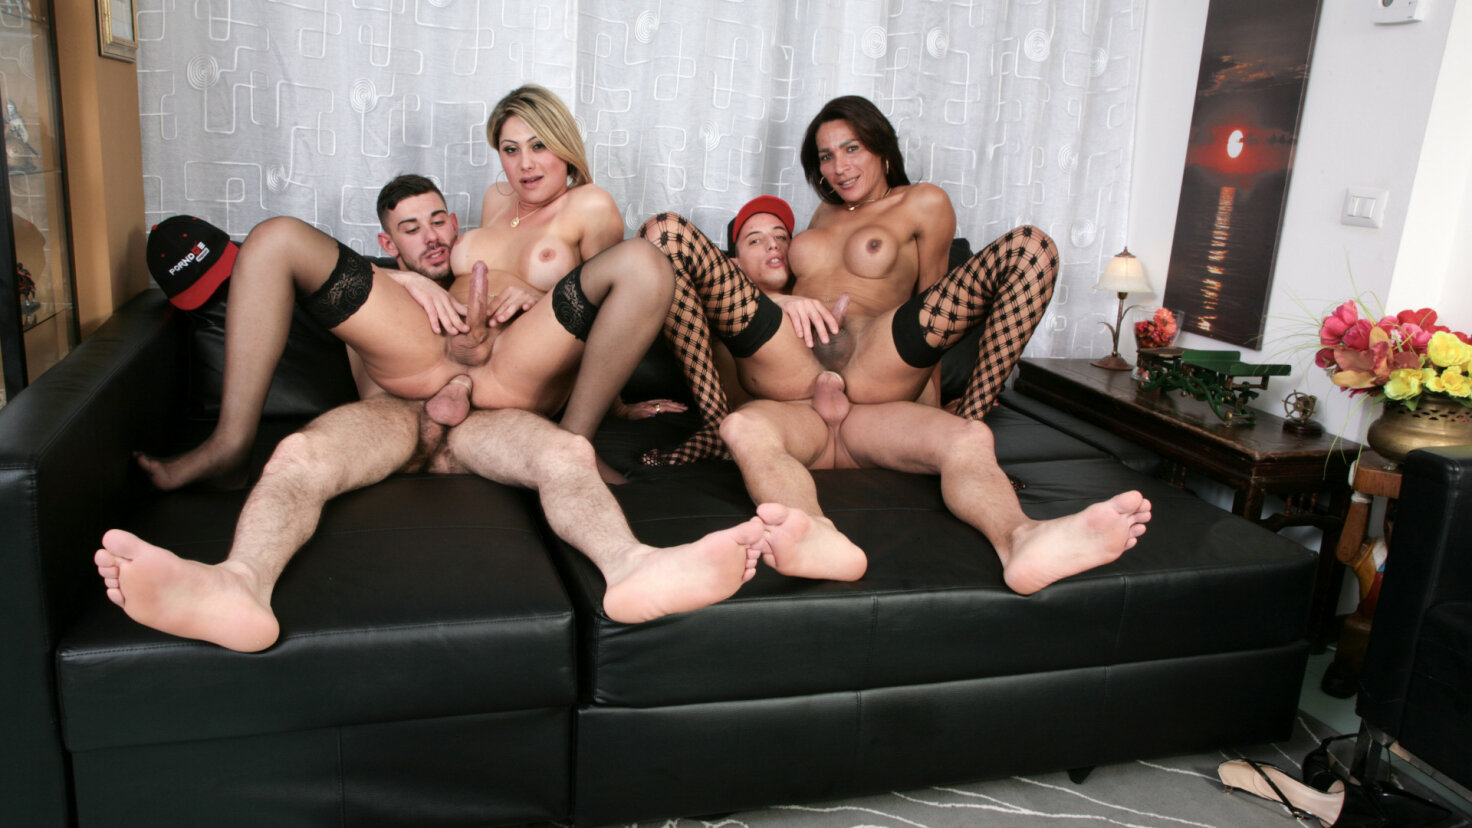 Wild hardcore foursome with hot trannies and horny studs